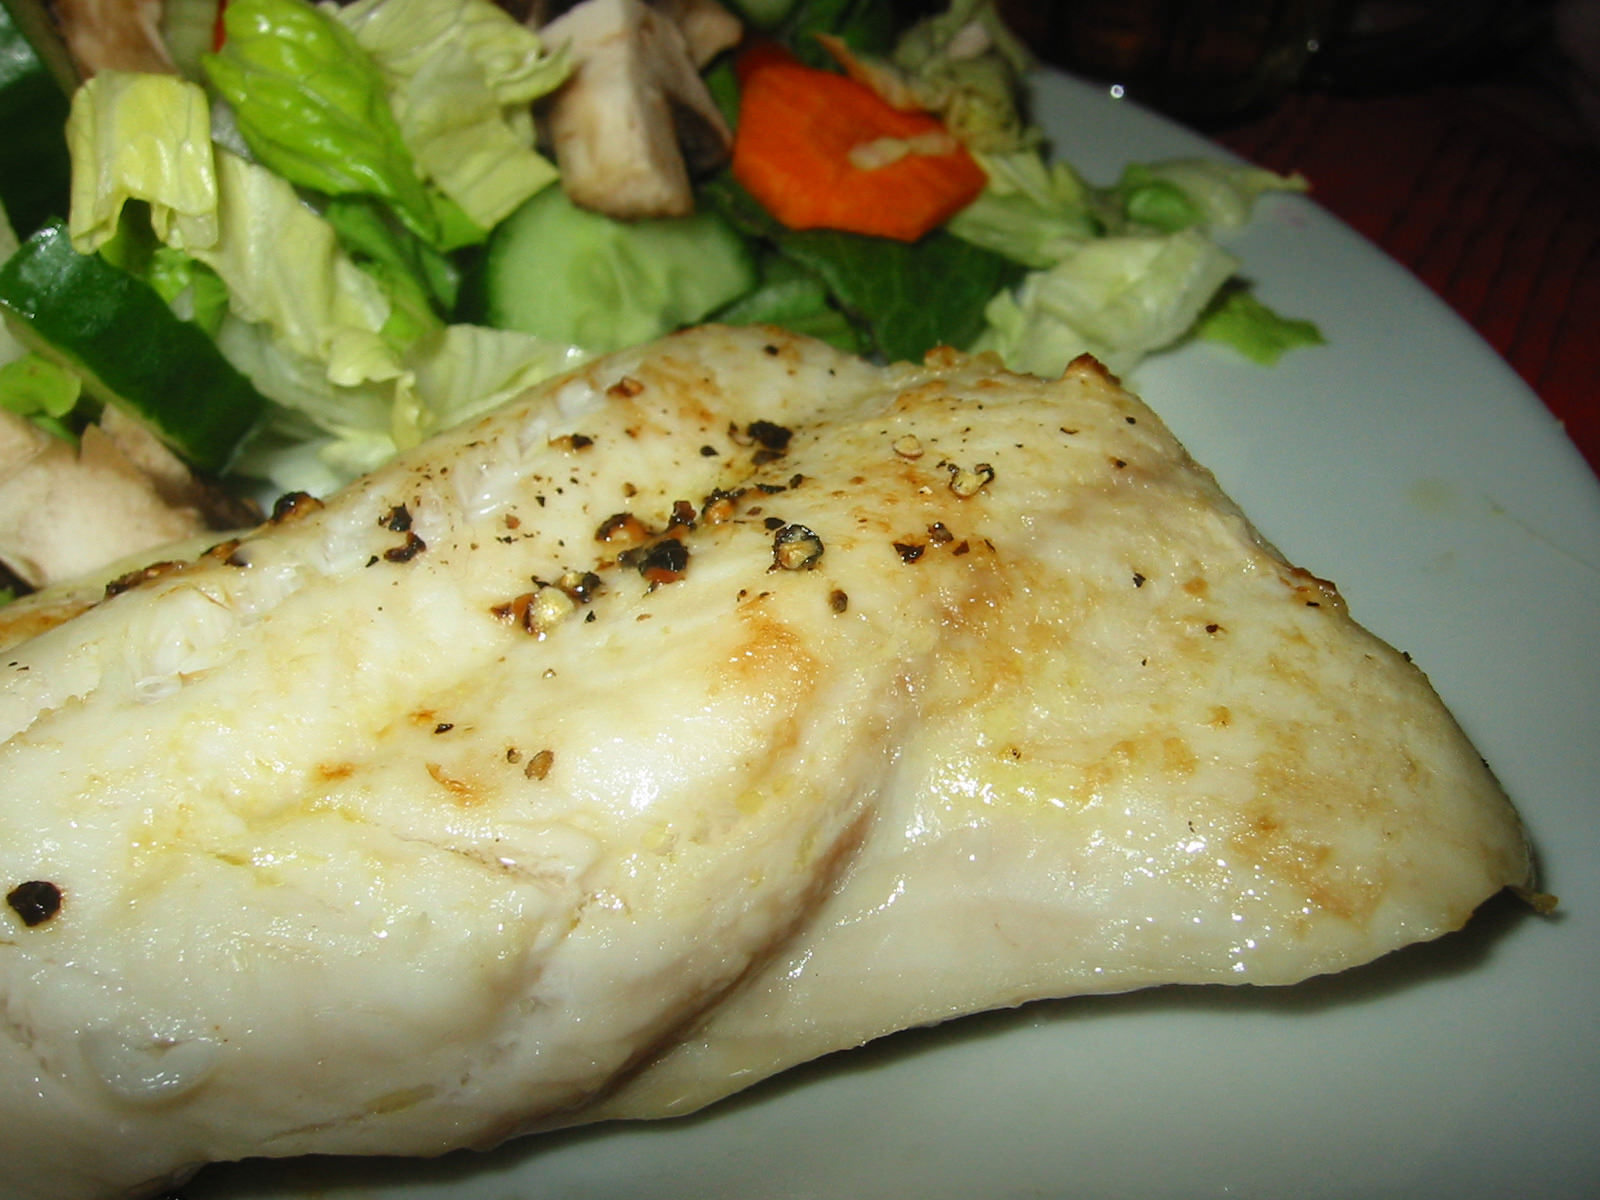 Grilled shark, close-up